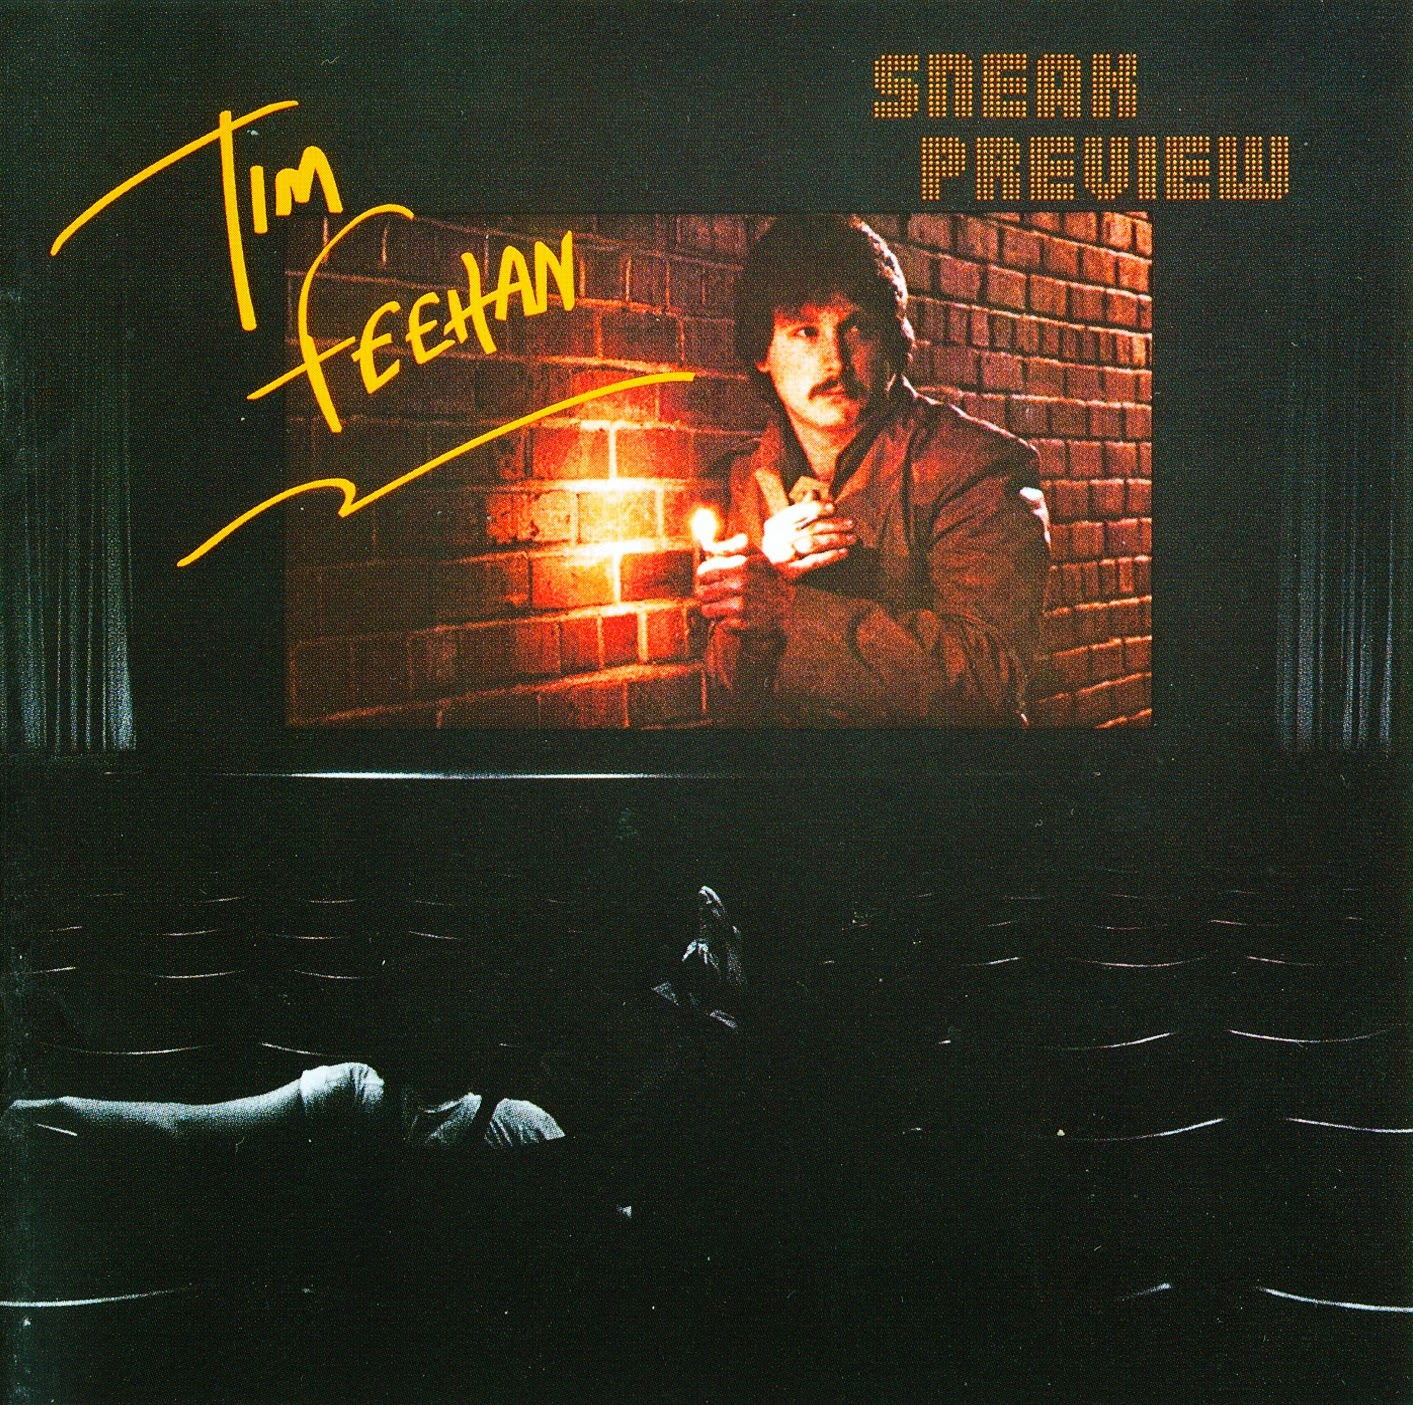 Tim Feehan Sneak preview 1981 aor melodic rock music blogspot bands albums